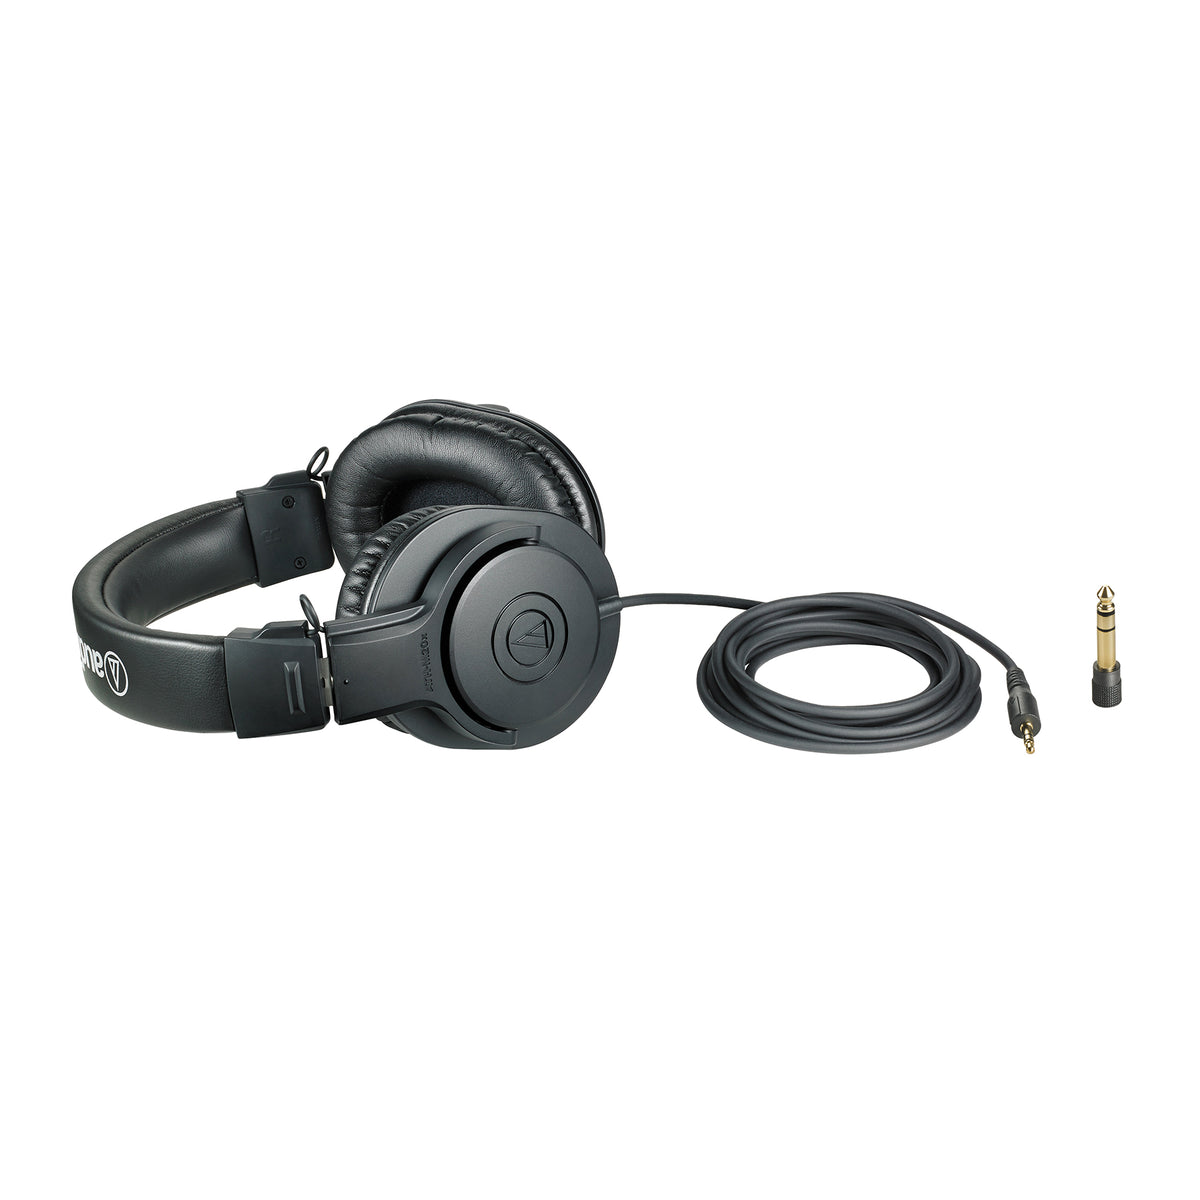 Audio-Technica: ATH-M20x Professional Monitor Headphones